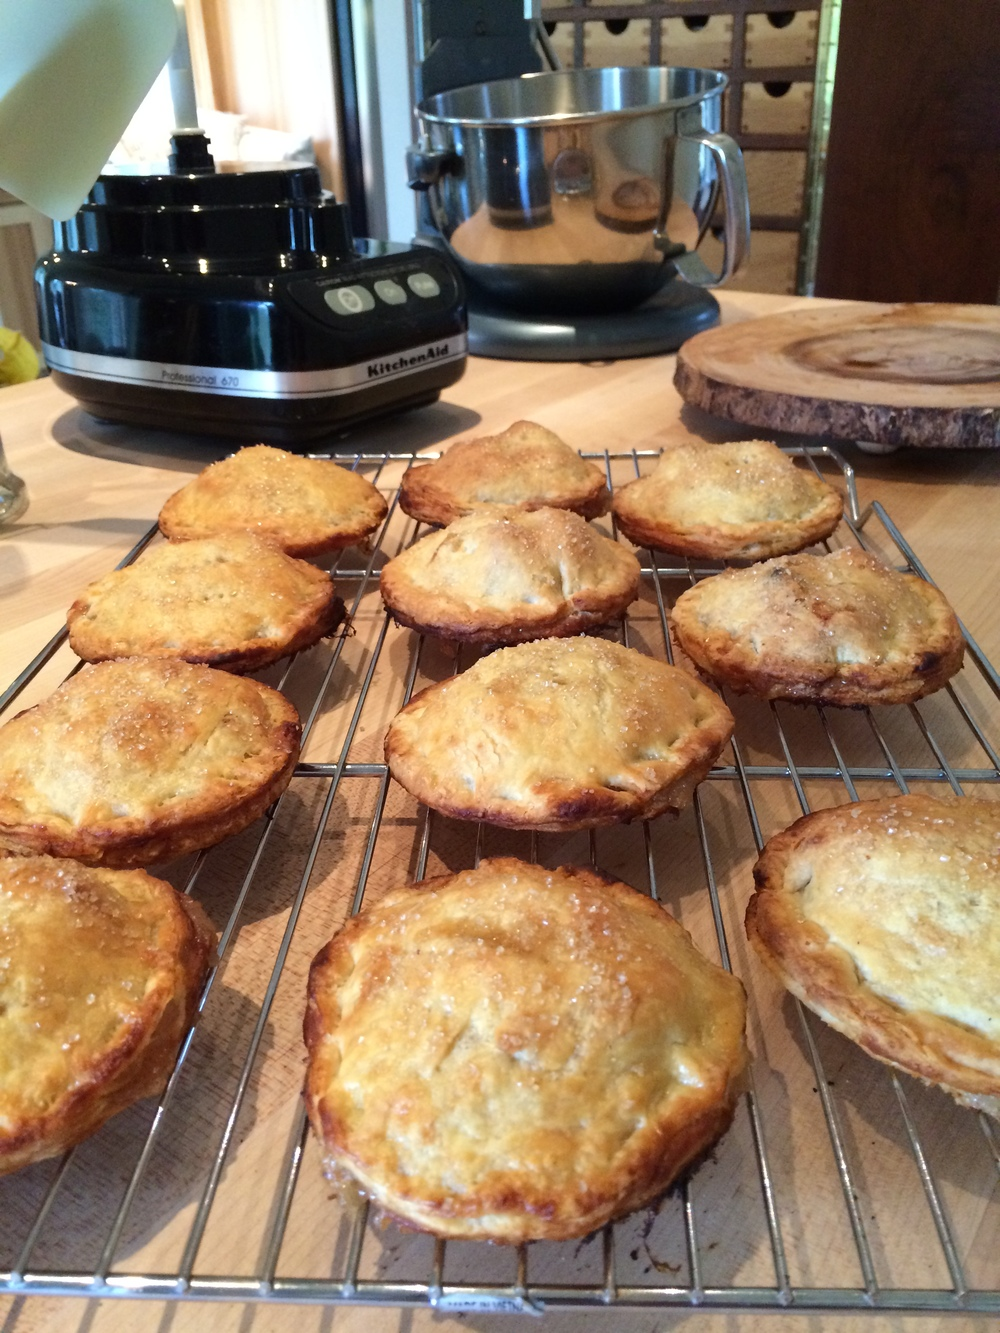 And, I can make some delicious apple hand pies too!